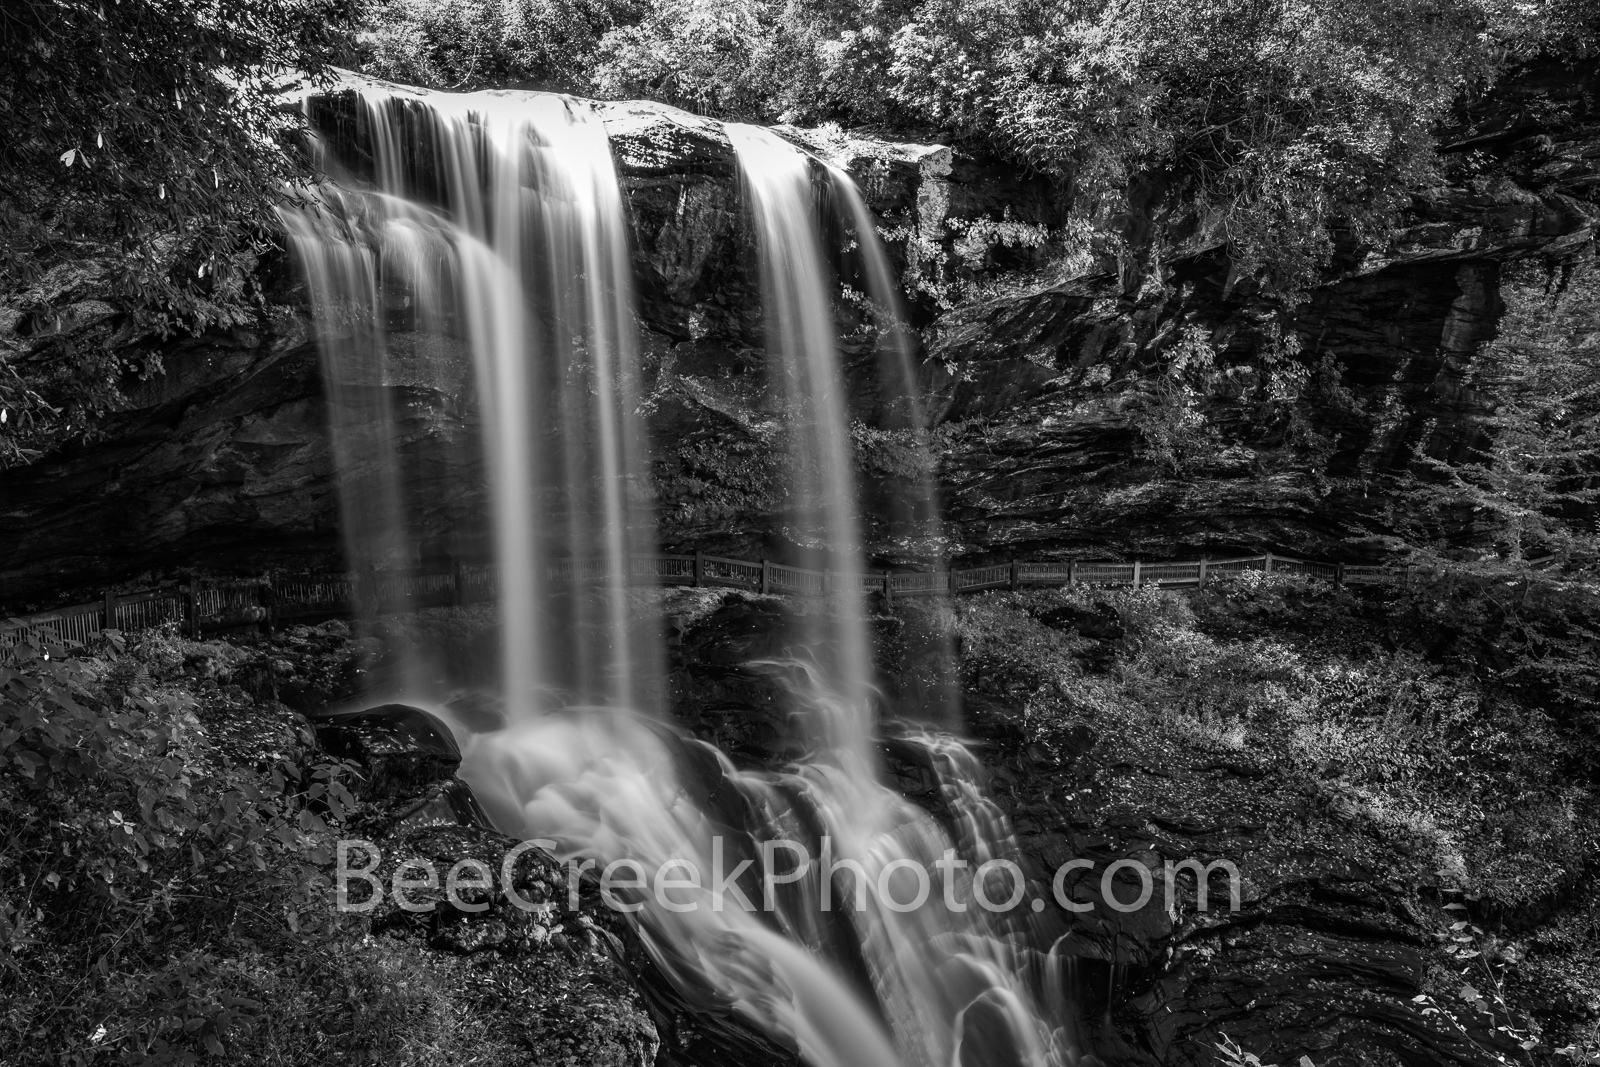 dry falls, waterfall, falls, black and white, b w,  water falling,  Smoky mountain, smokies, nature, natural,  North Caroline,  vertical, landscape, Cherokee, NC, , photo